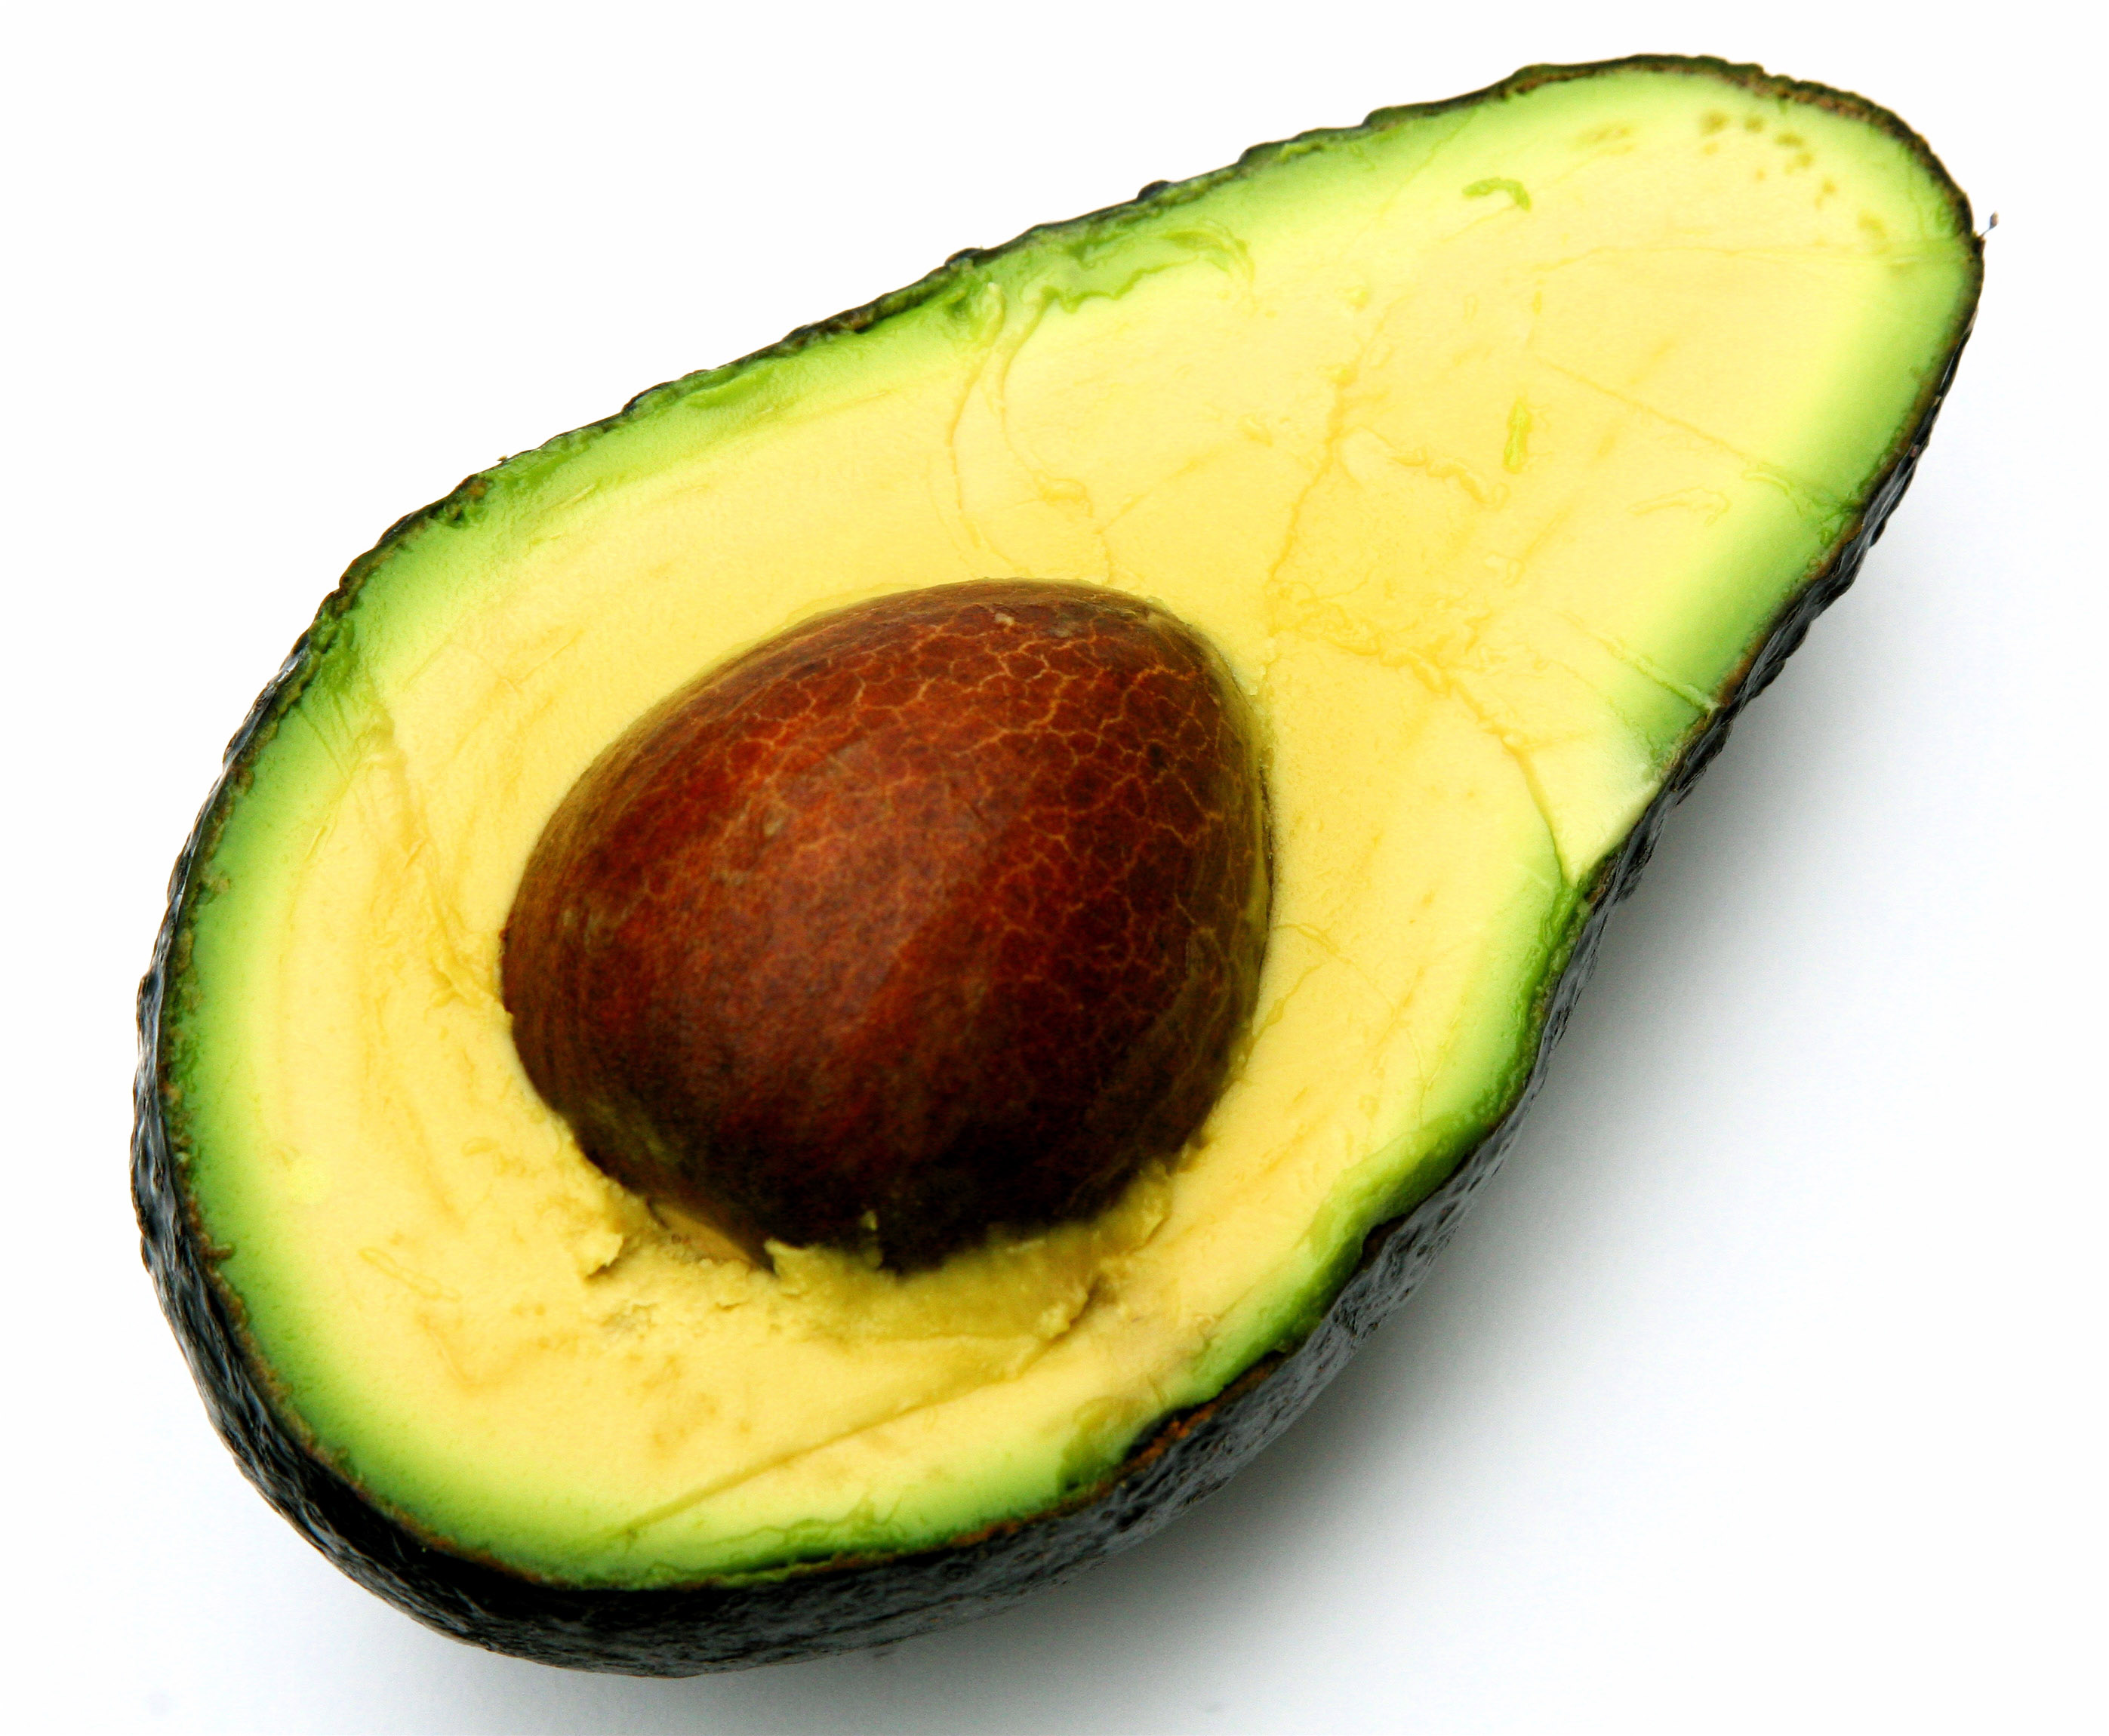 Avocado Component Fights Cancer